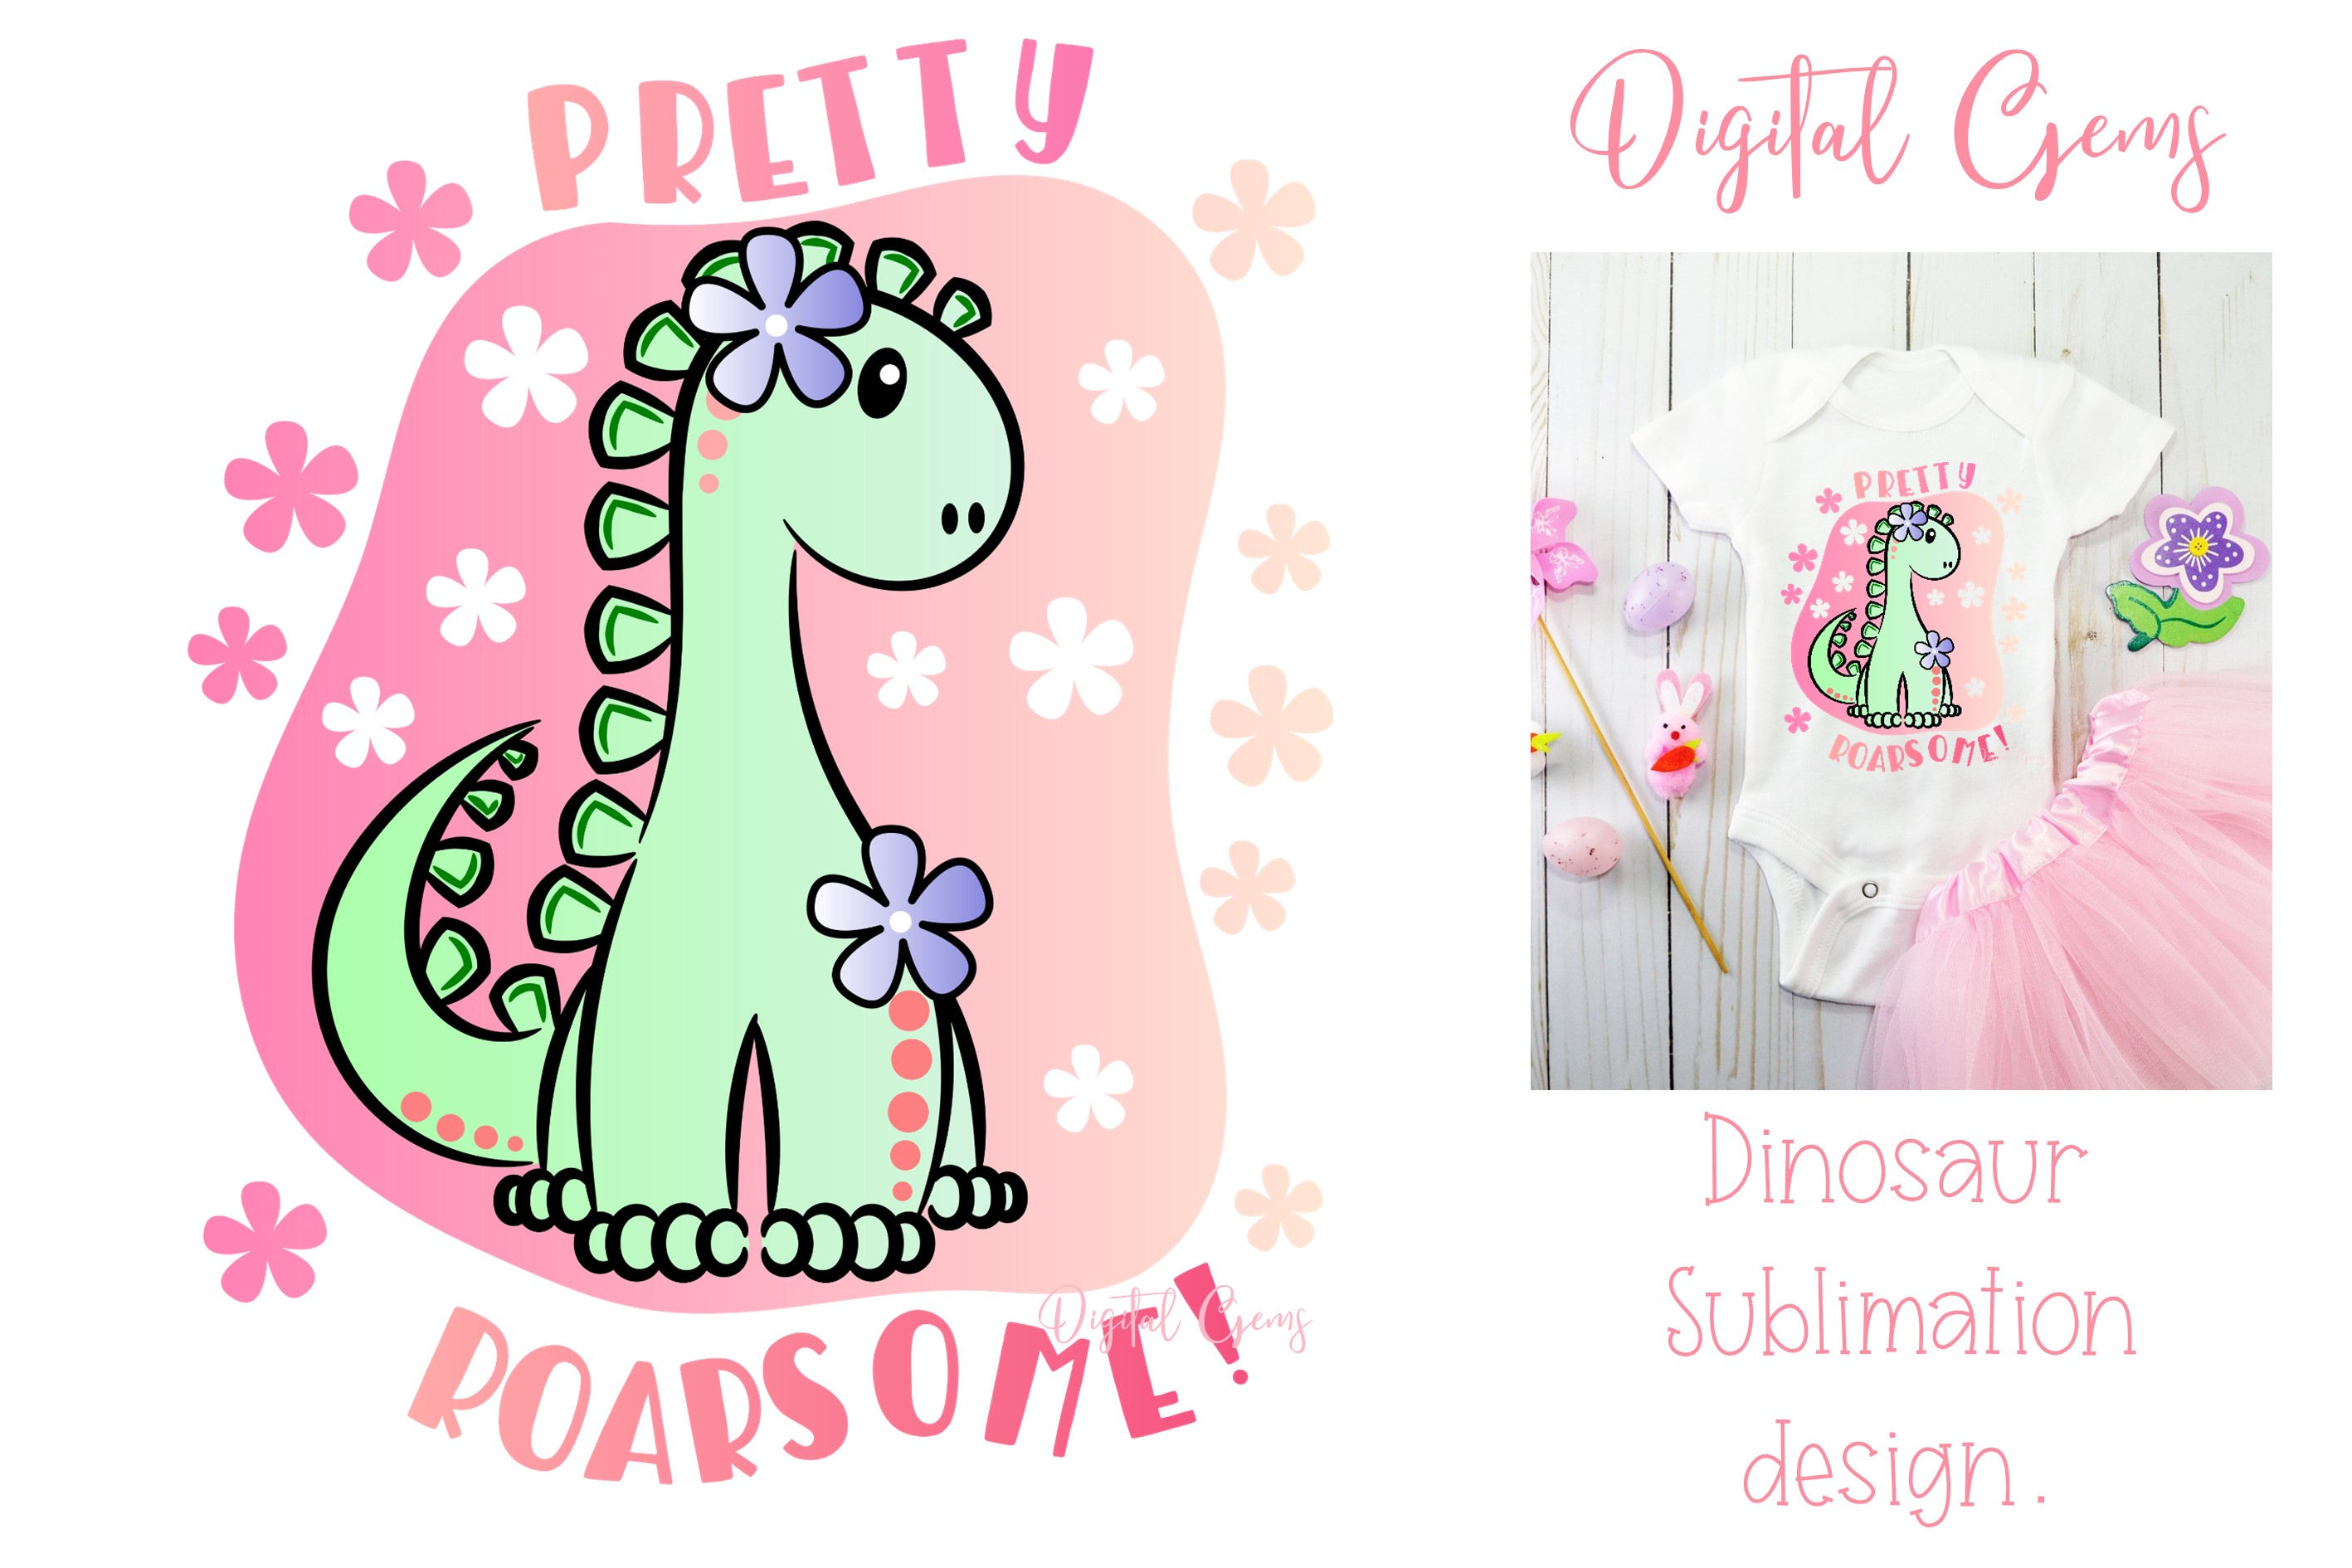 Download Free Dinosaur Sublimation Design Graphic By Digital Gems Creative for Cricut Explore, Silhouette and other cutting machines.